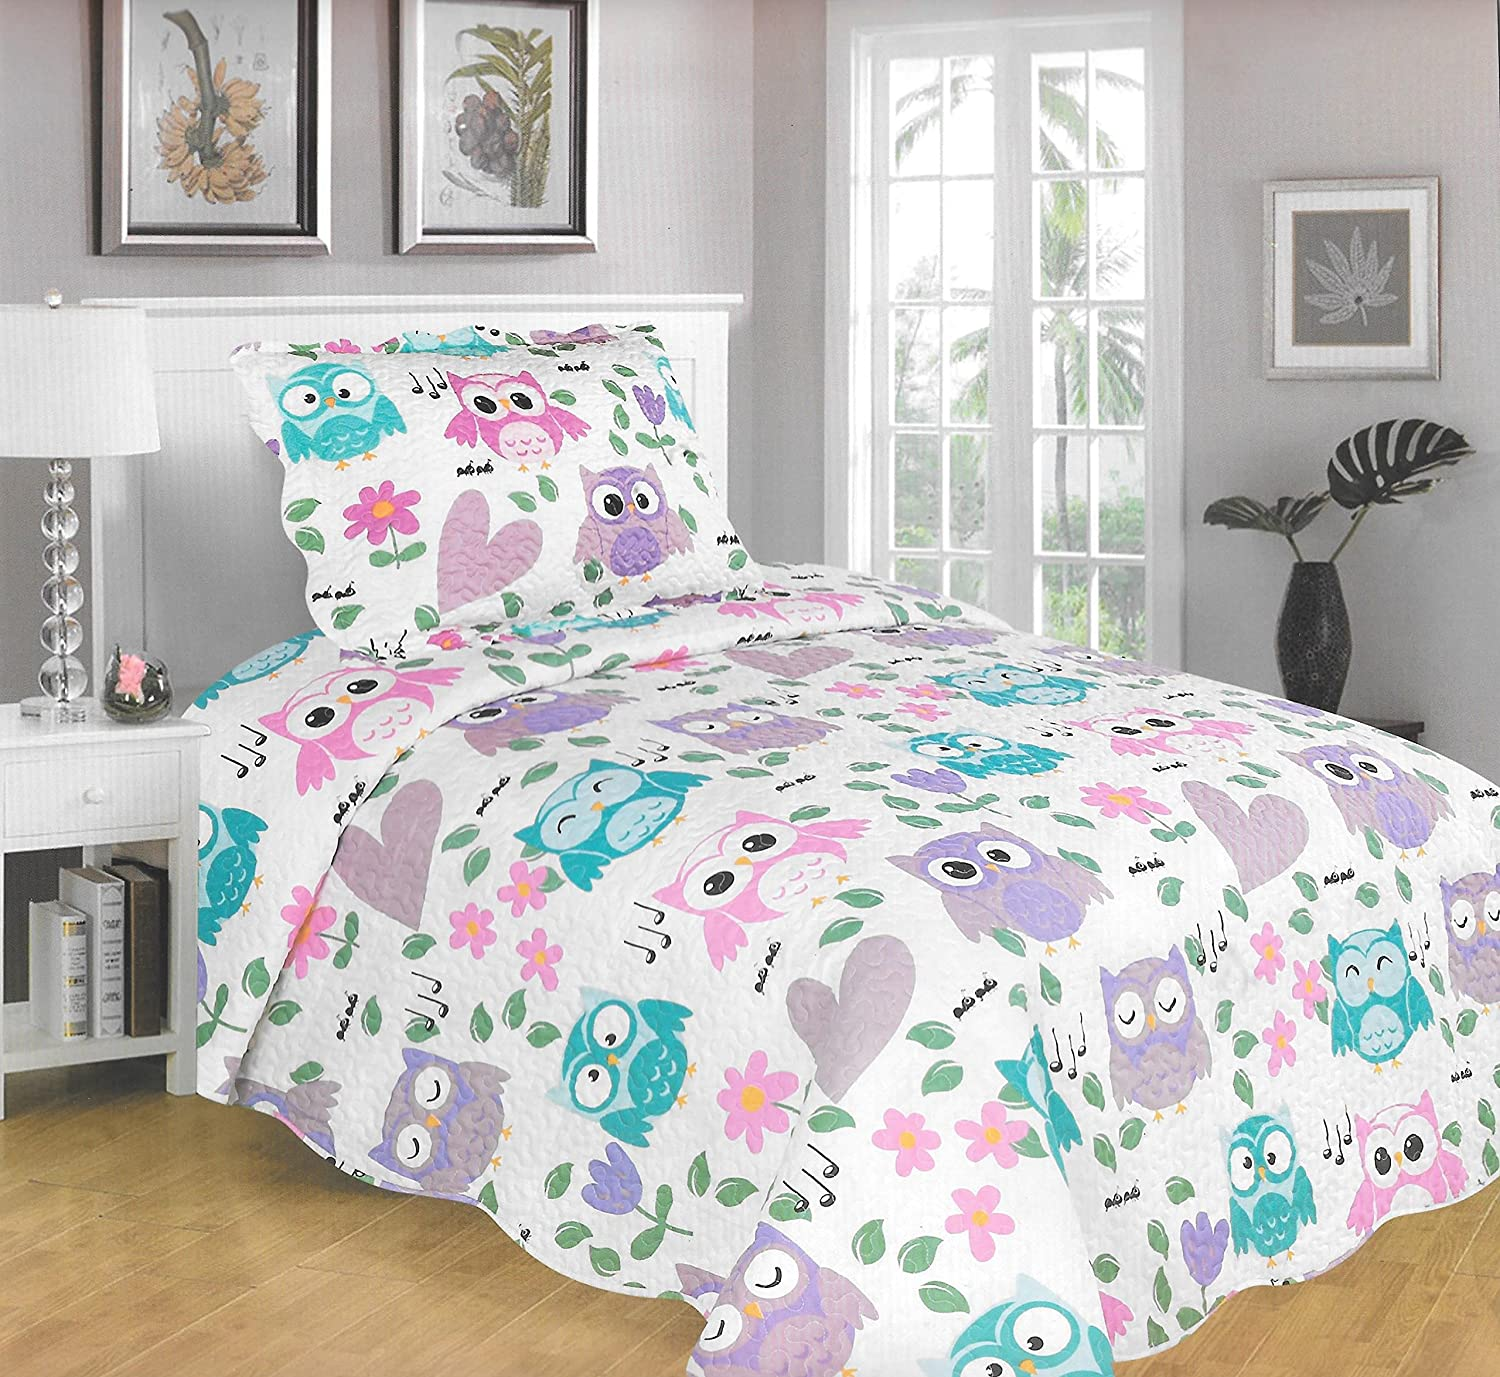 MarCielo 2 Piece Kids Bedspread Quilts Set Throw Blanket for Teens Boys Girls